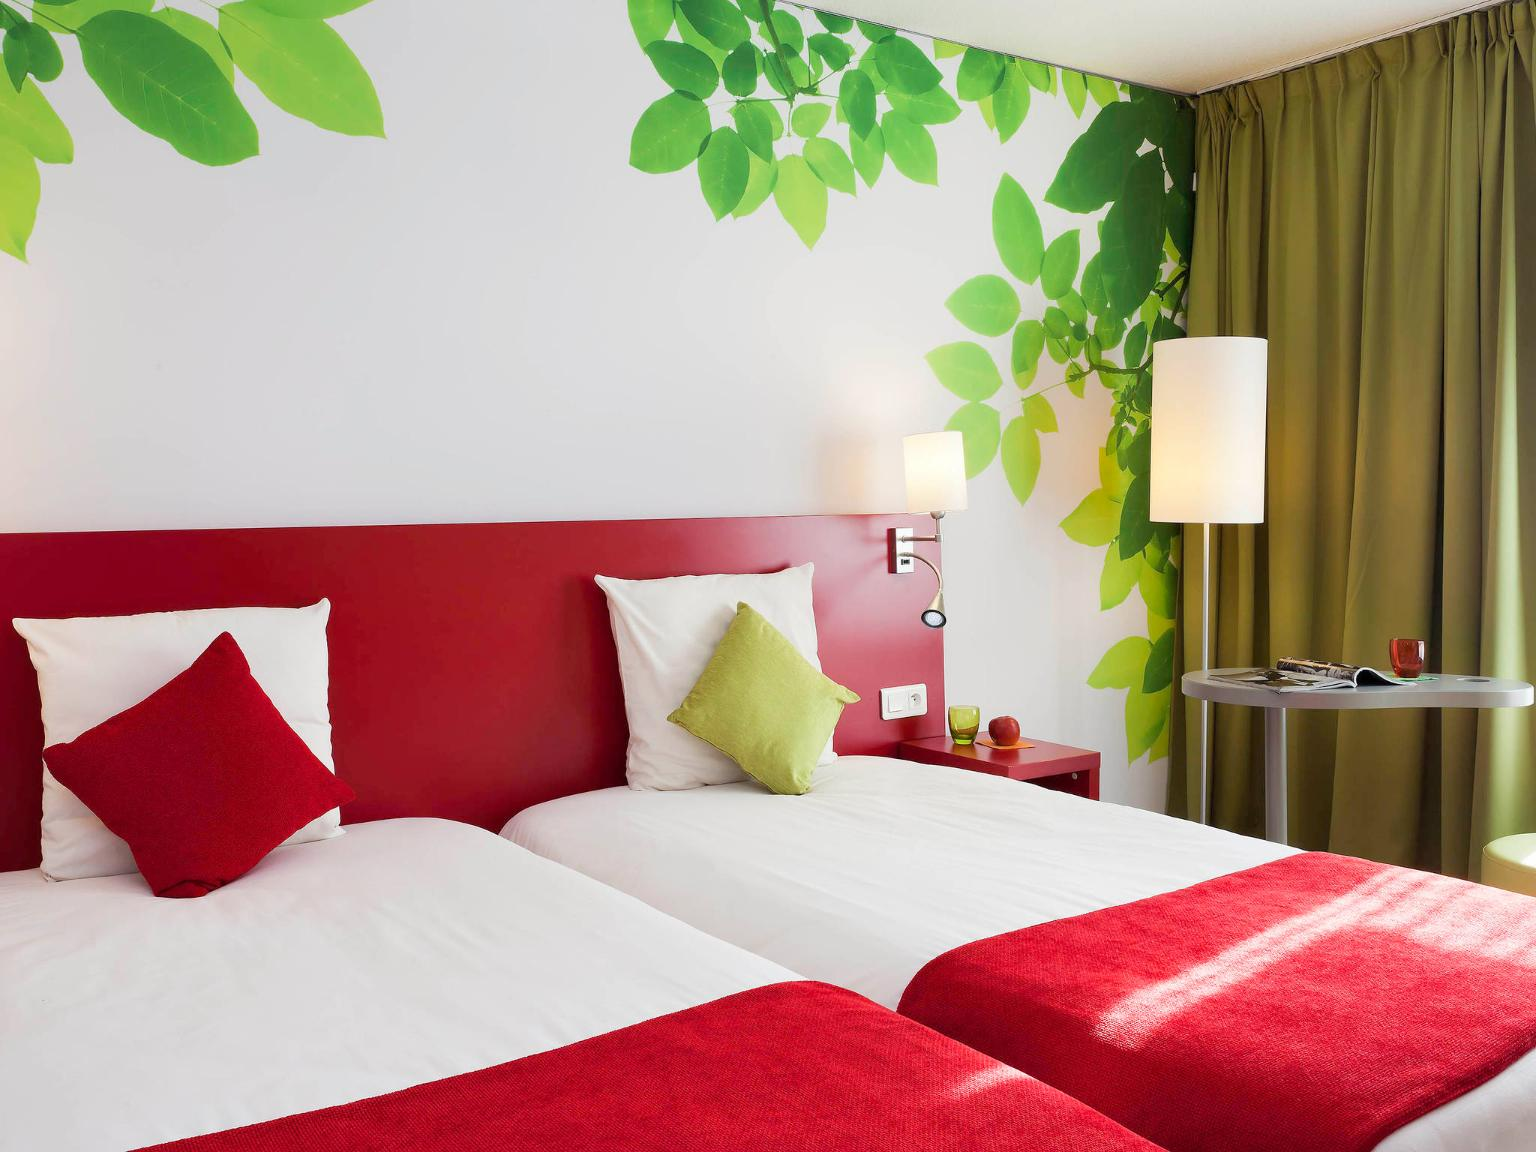 ibis styles avignon sud h tel 2968 avenue de l 39 amandier 84000 avignon adresse horaire. Black Bedroom Furniture Sets. Home Design Ideas